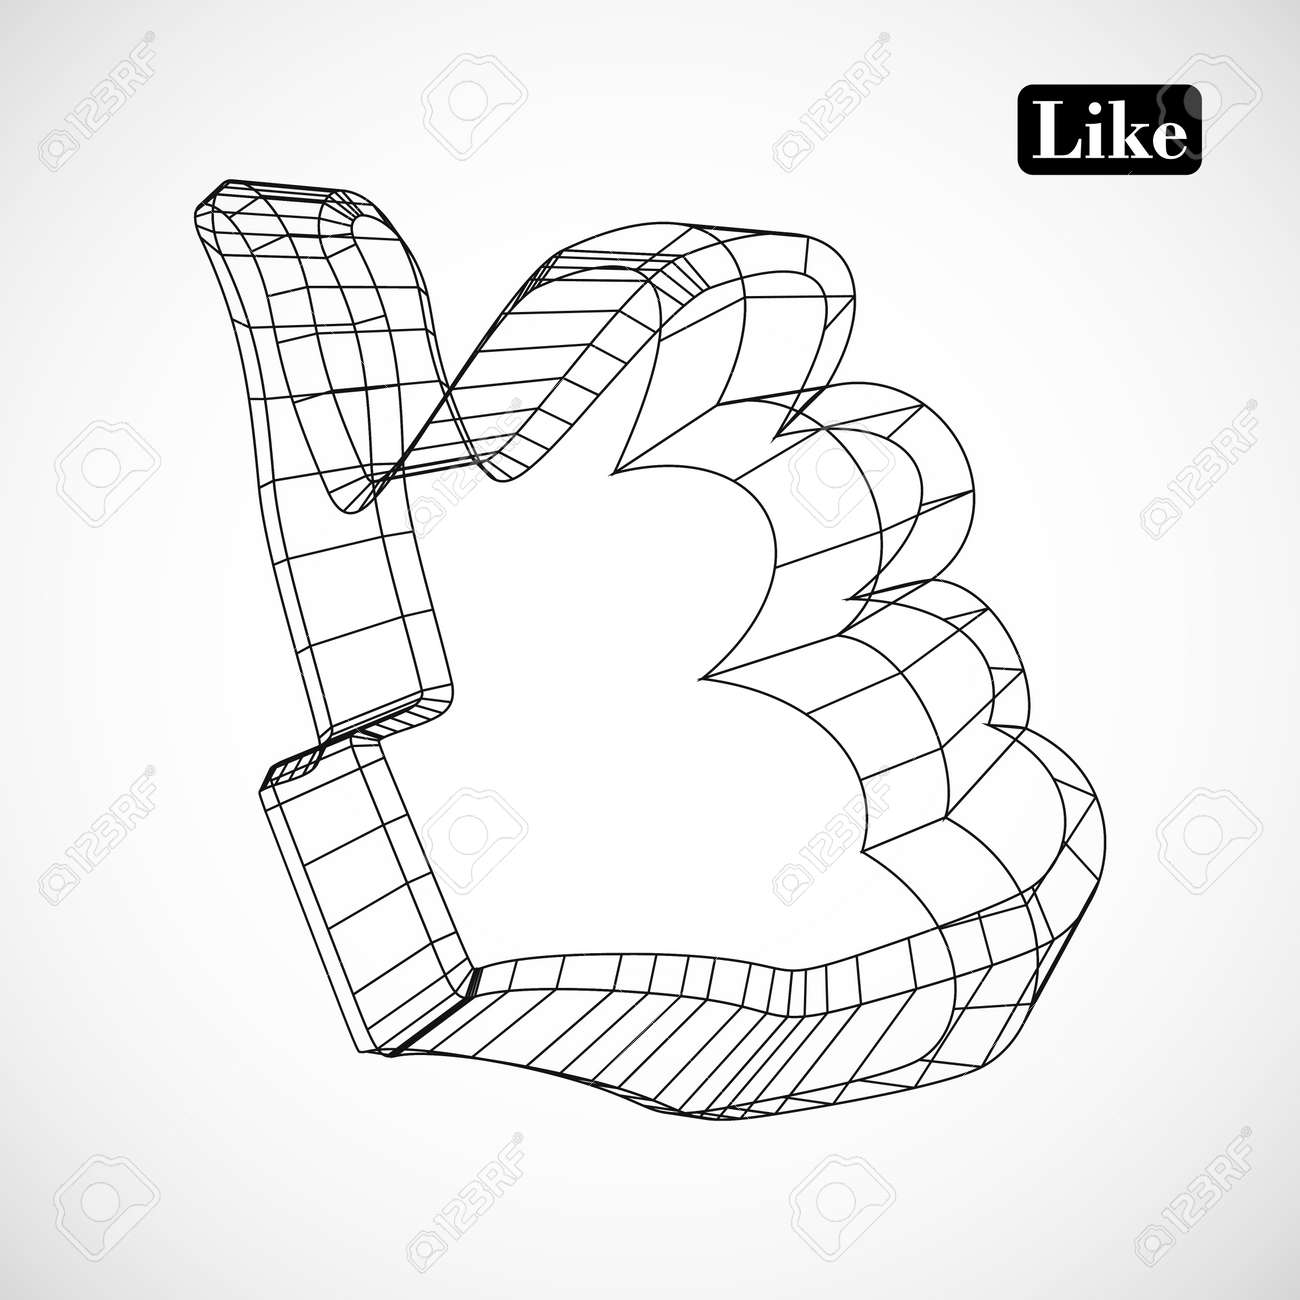 abstract symbol of LIKE in style 3D Stock Vector - 16576116